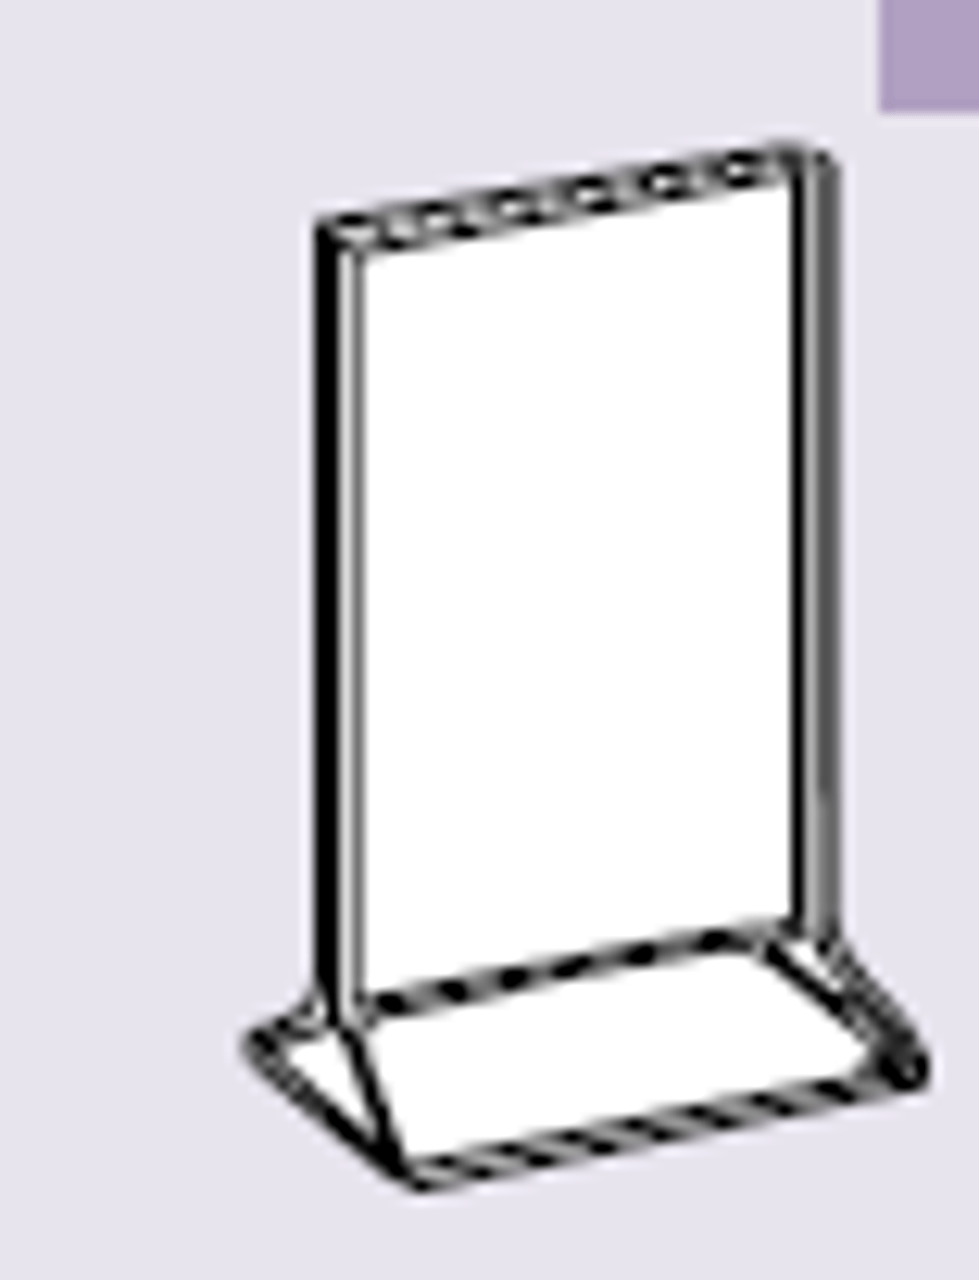 ACRYLIC TABLE STANDS - Table Tent Insert Holder 7 x 5